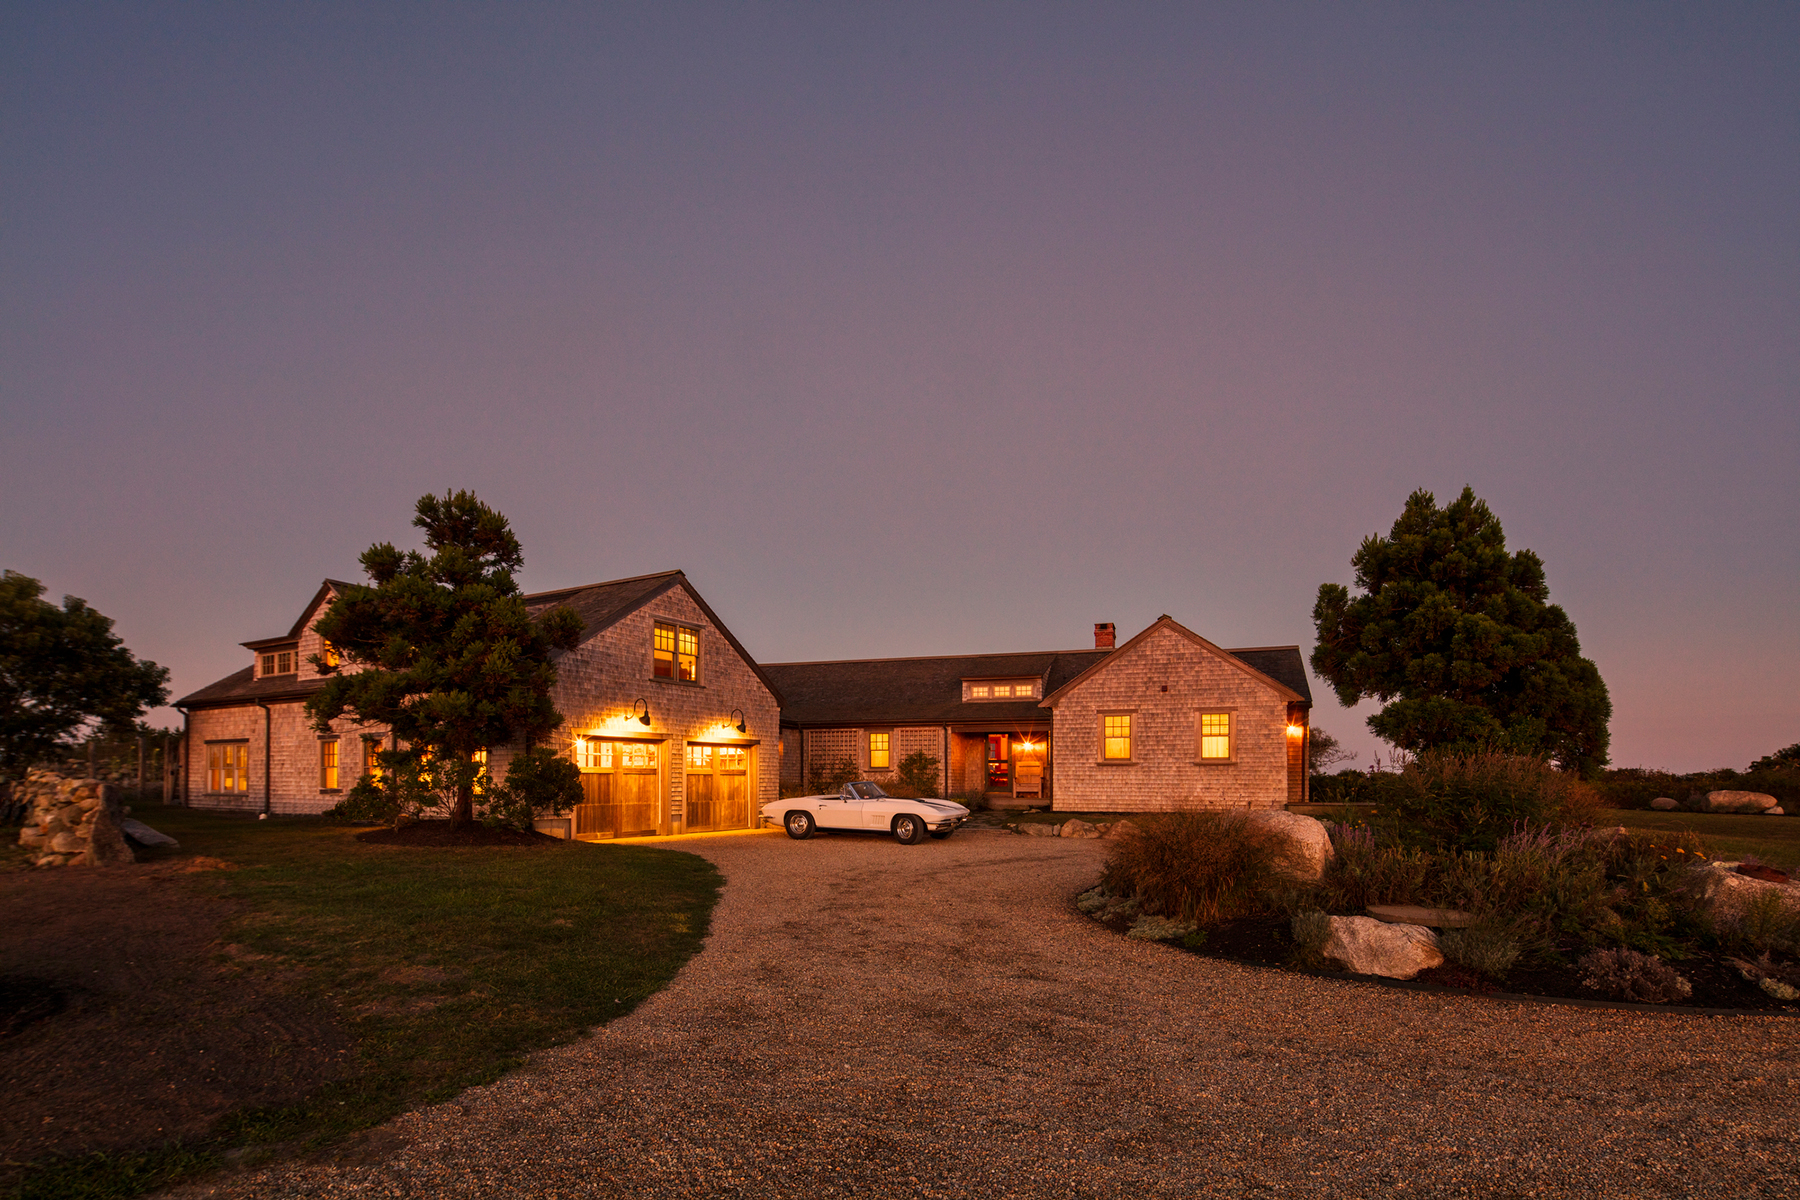 Single Family Home for Active at Elegant property in Chilmark 18 Spruce Gate Road Chilmark, Massachusetts 02535 United States